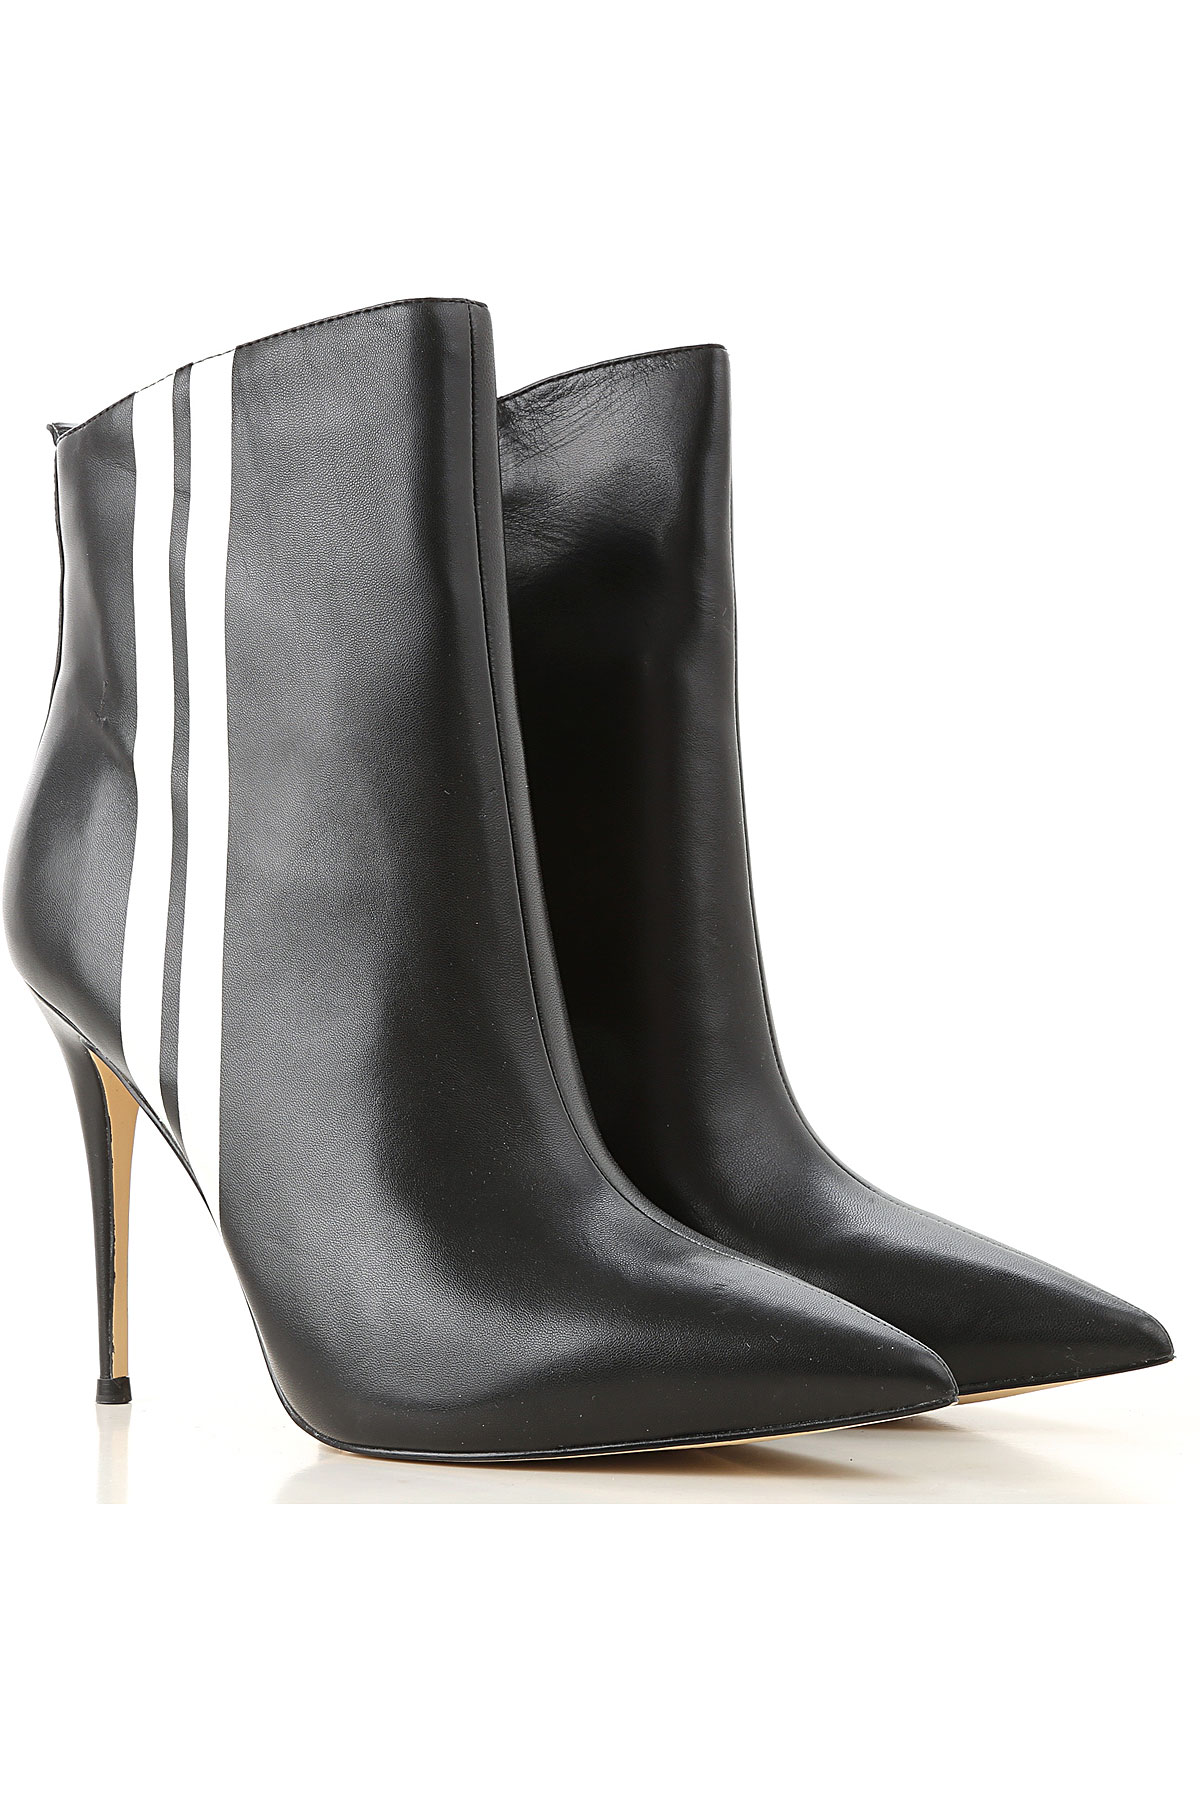 Image of Guess Boots for Women, Booties, Black, Leather, 2017, 8 9.5